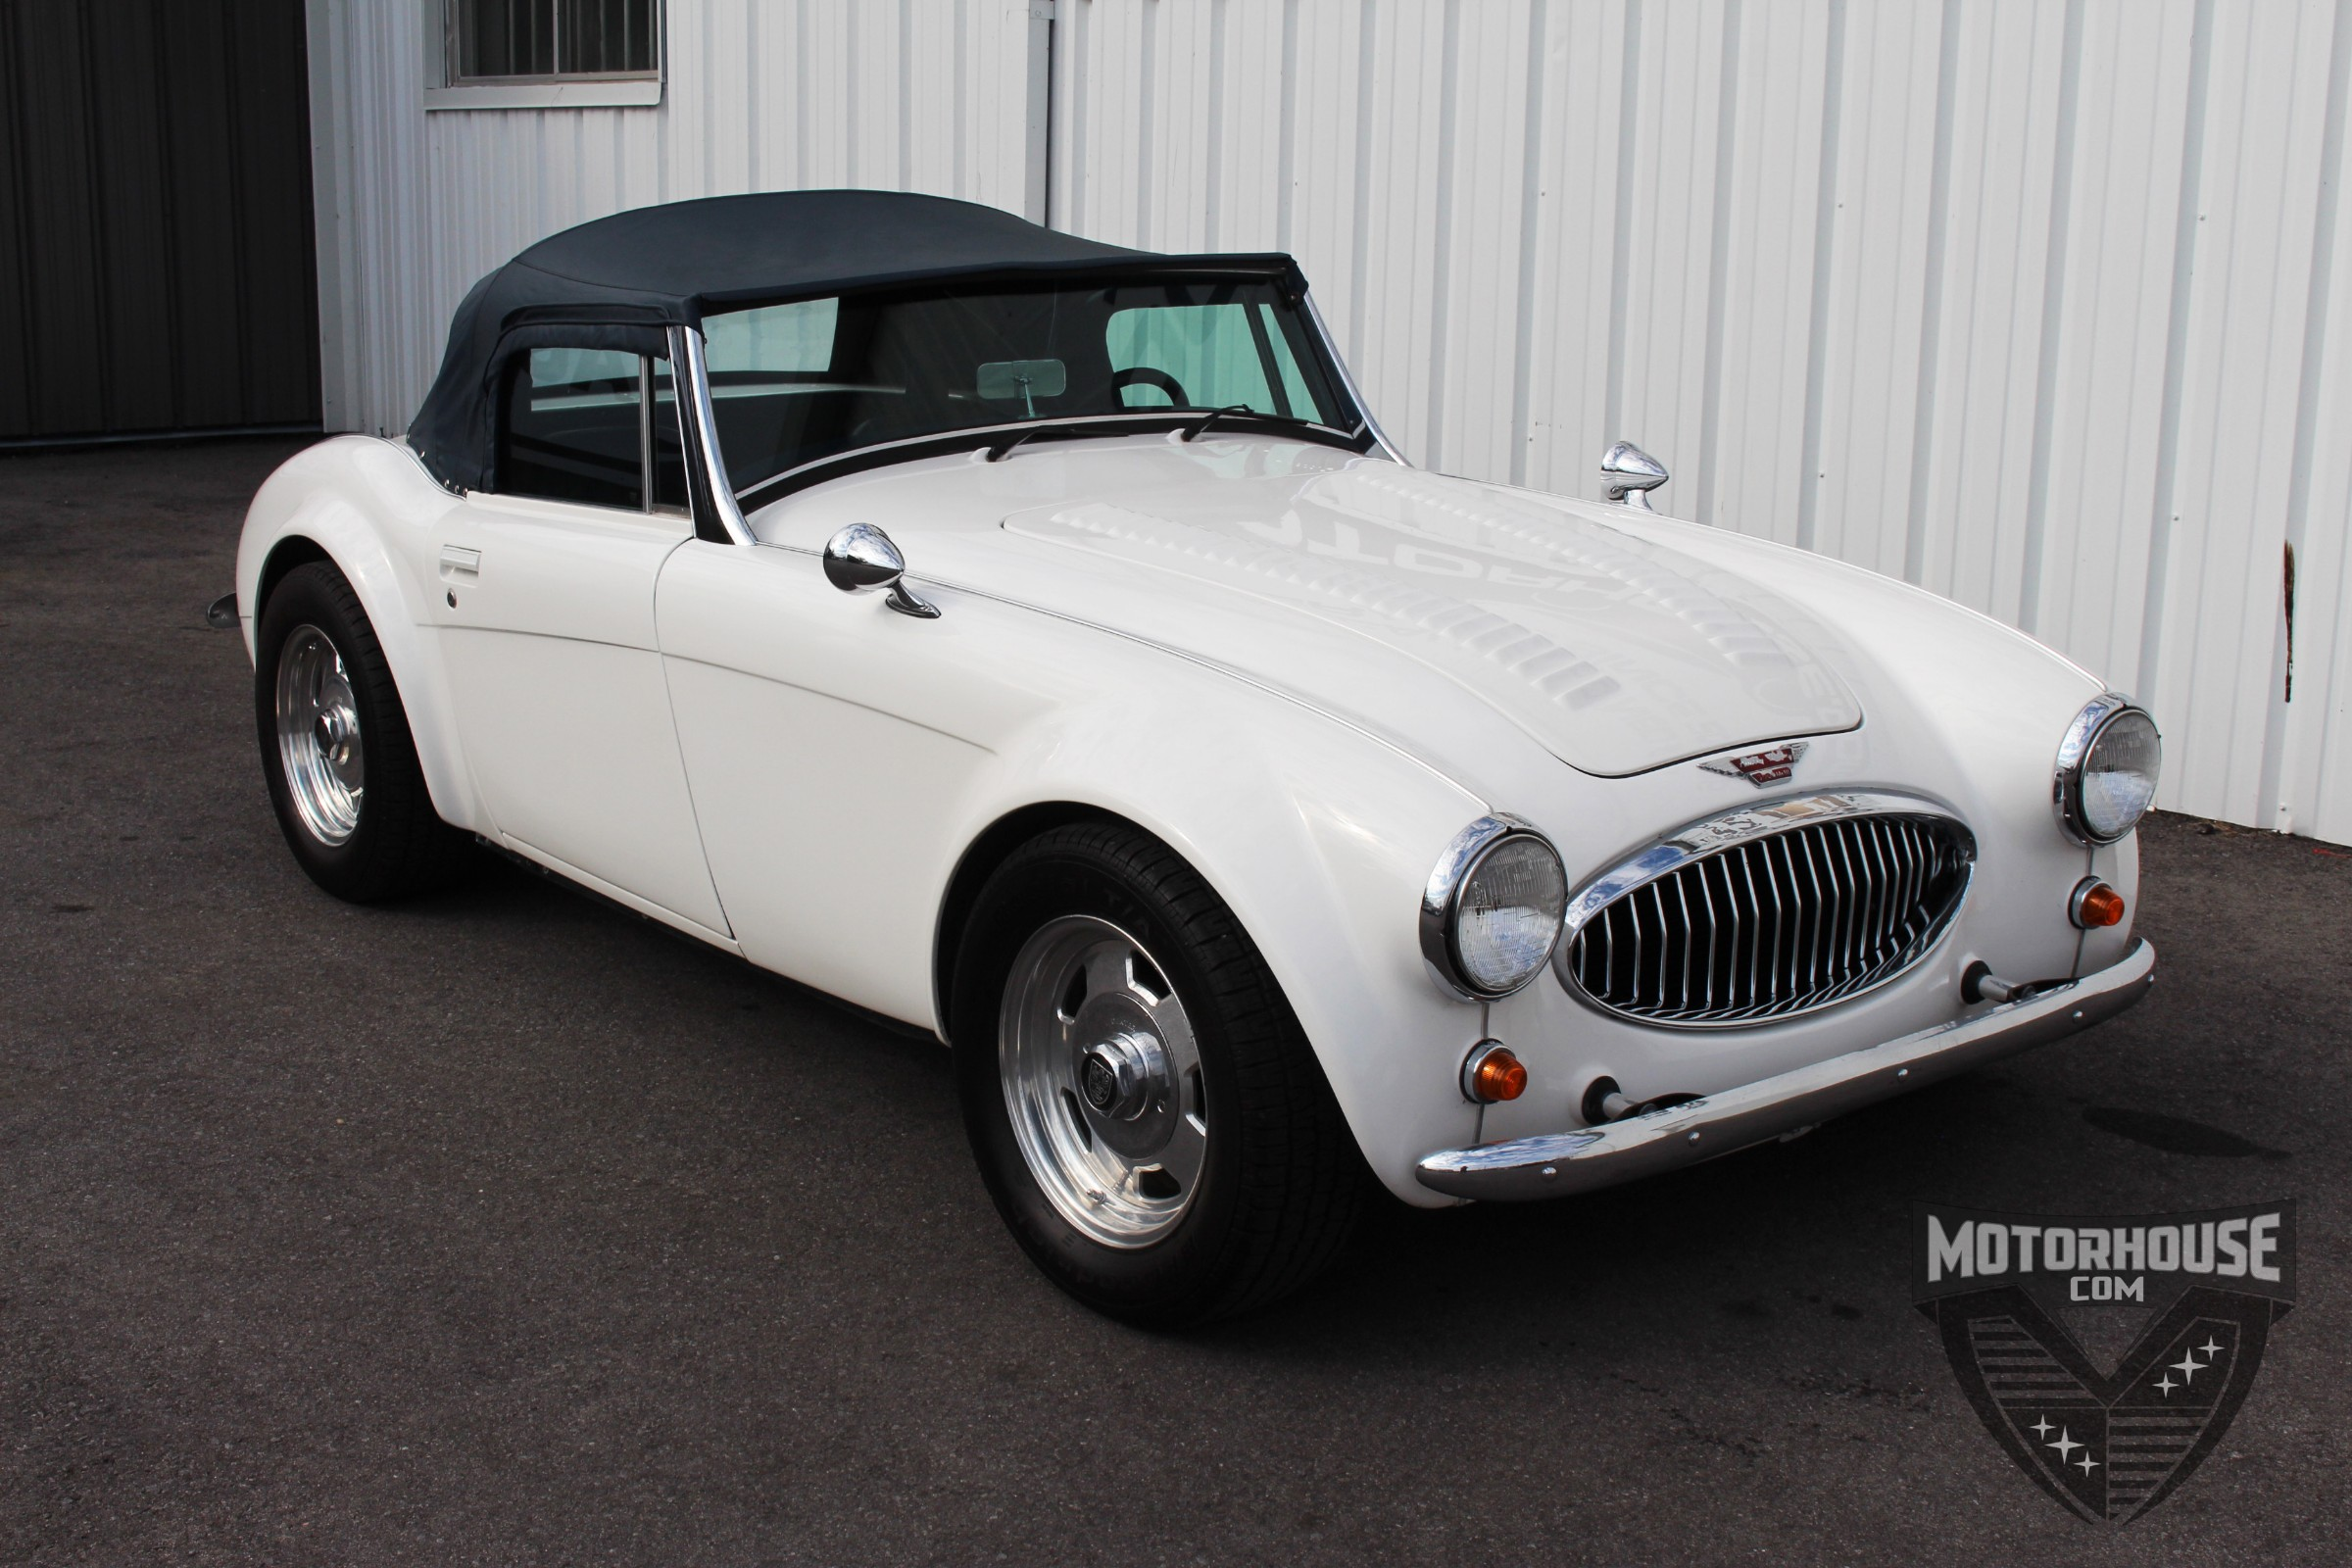 1965 Austin-Healey 3000Z Convertable (Stk: 1375) in Carleton Place - Image 22 of 48